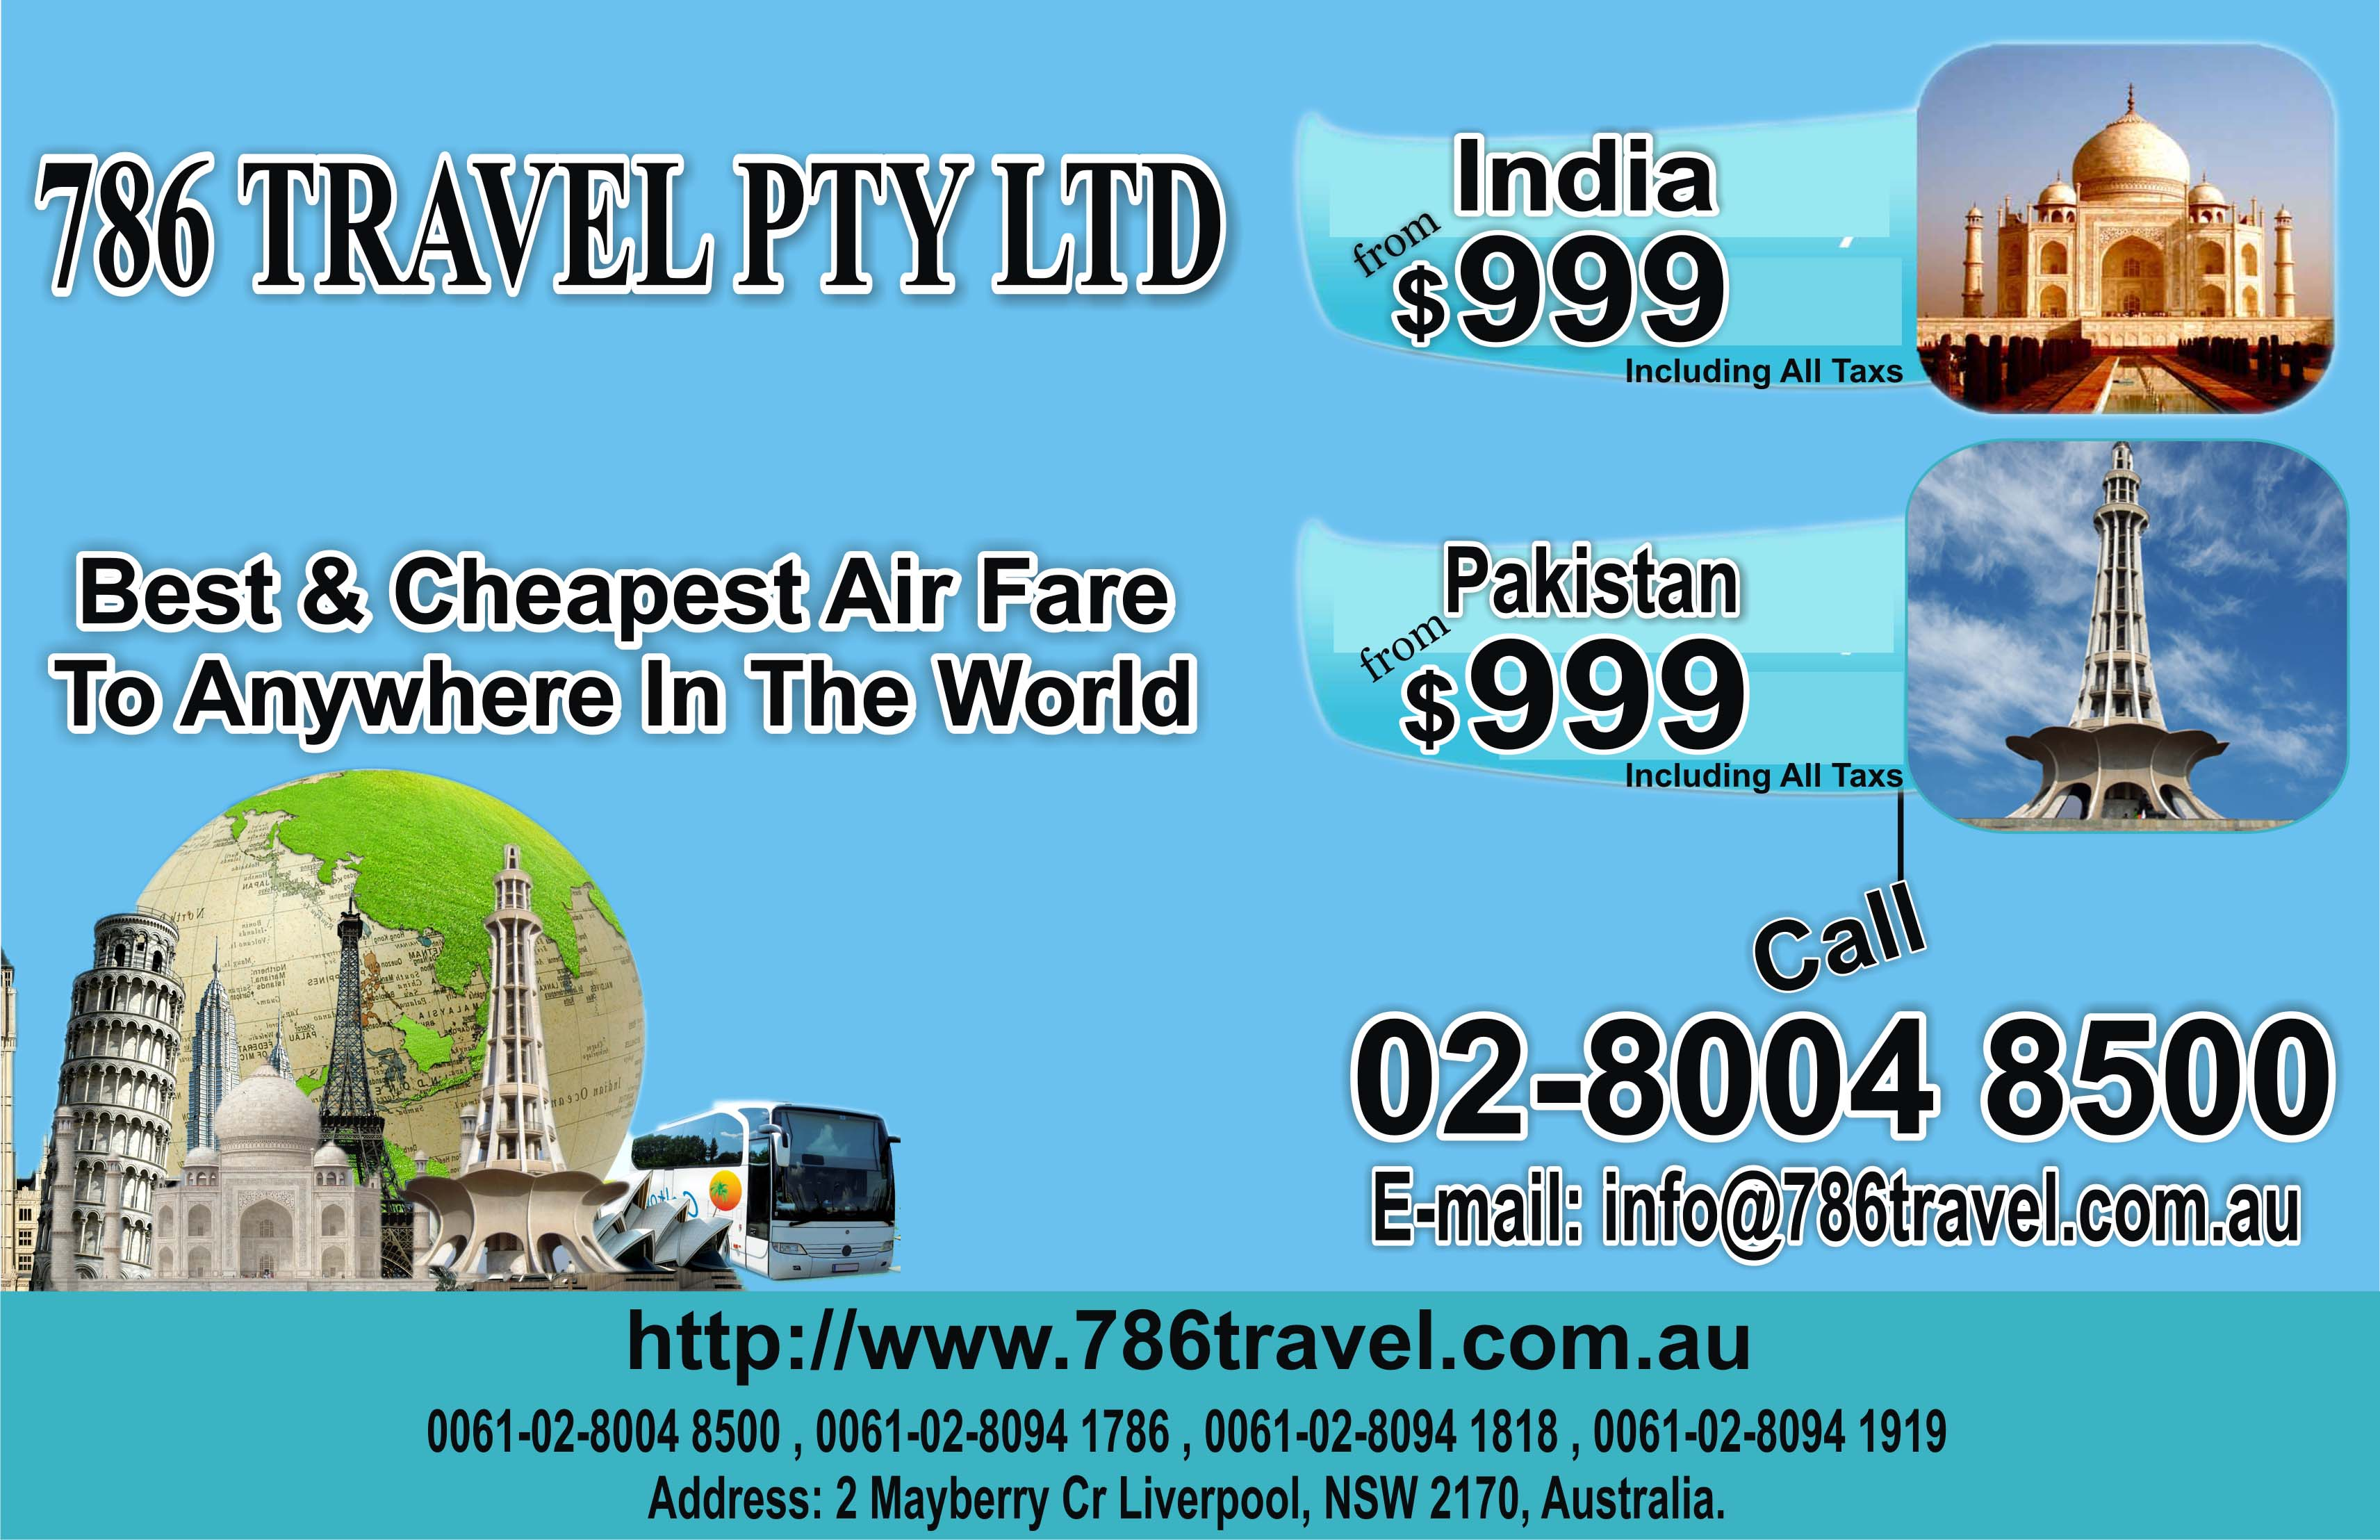 Travel Ads by Mobeenmobi on DeviantArt